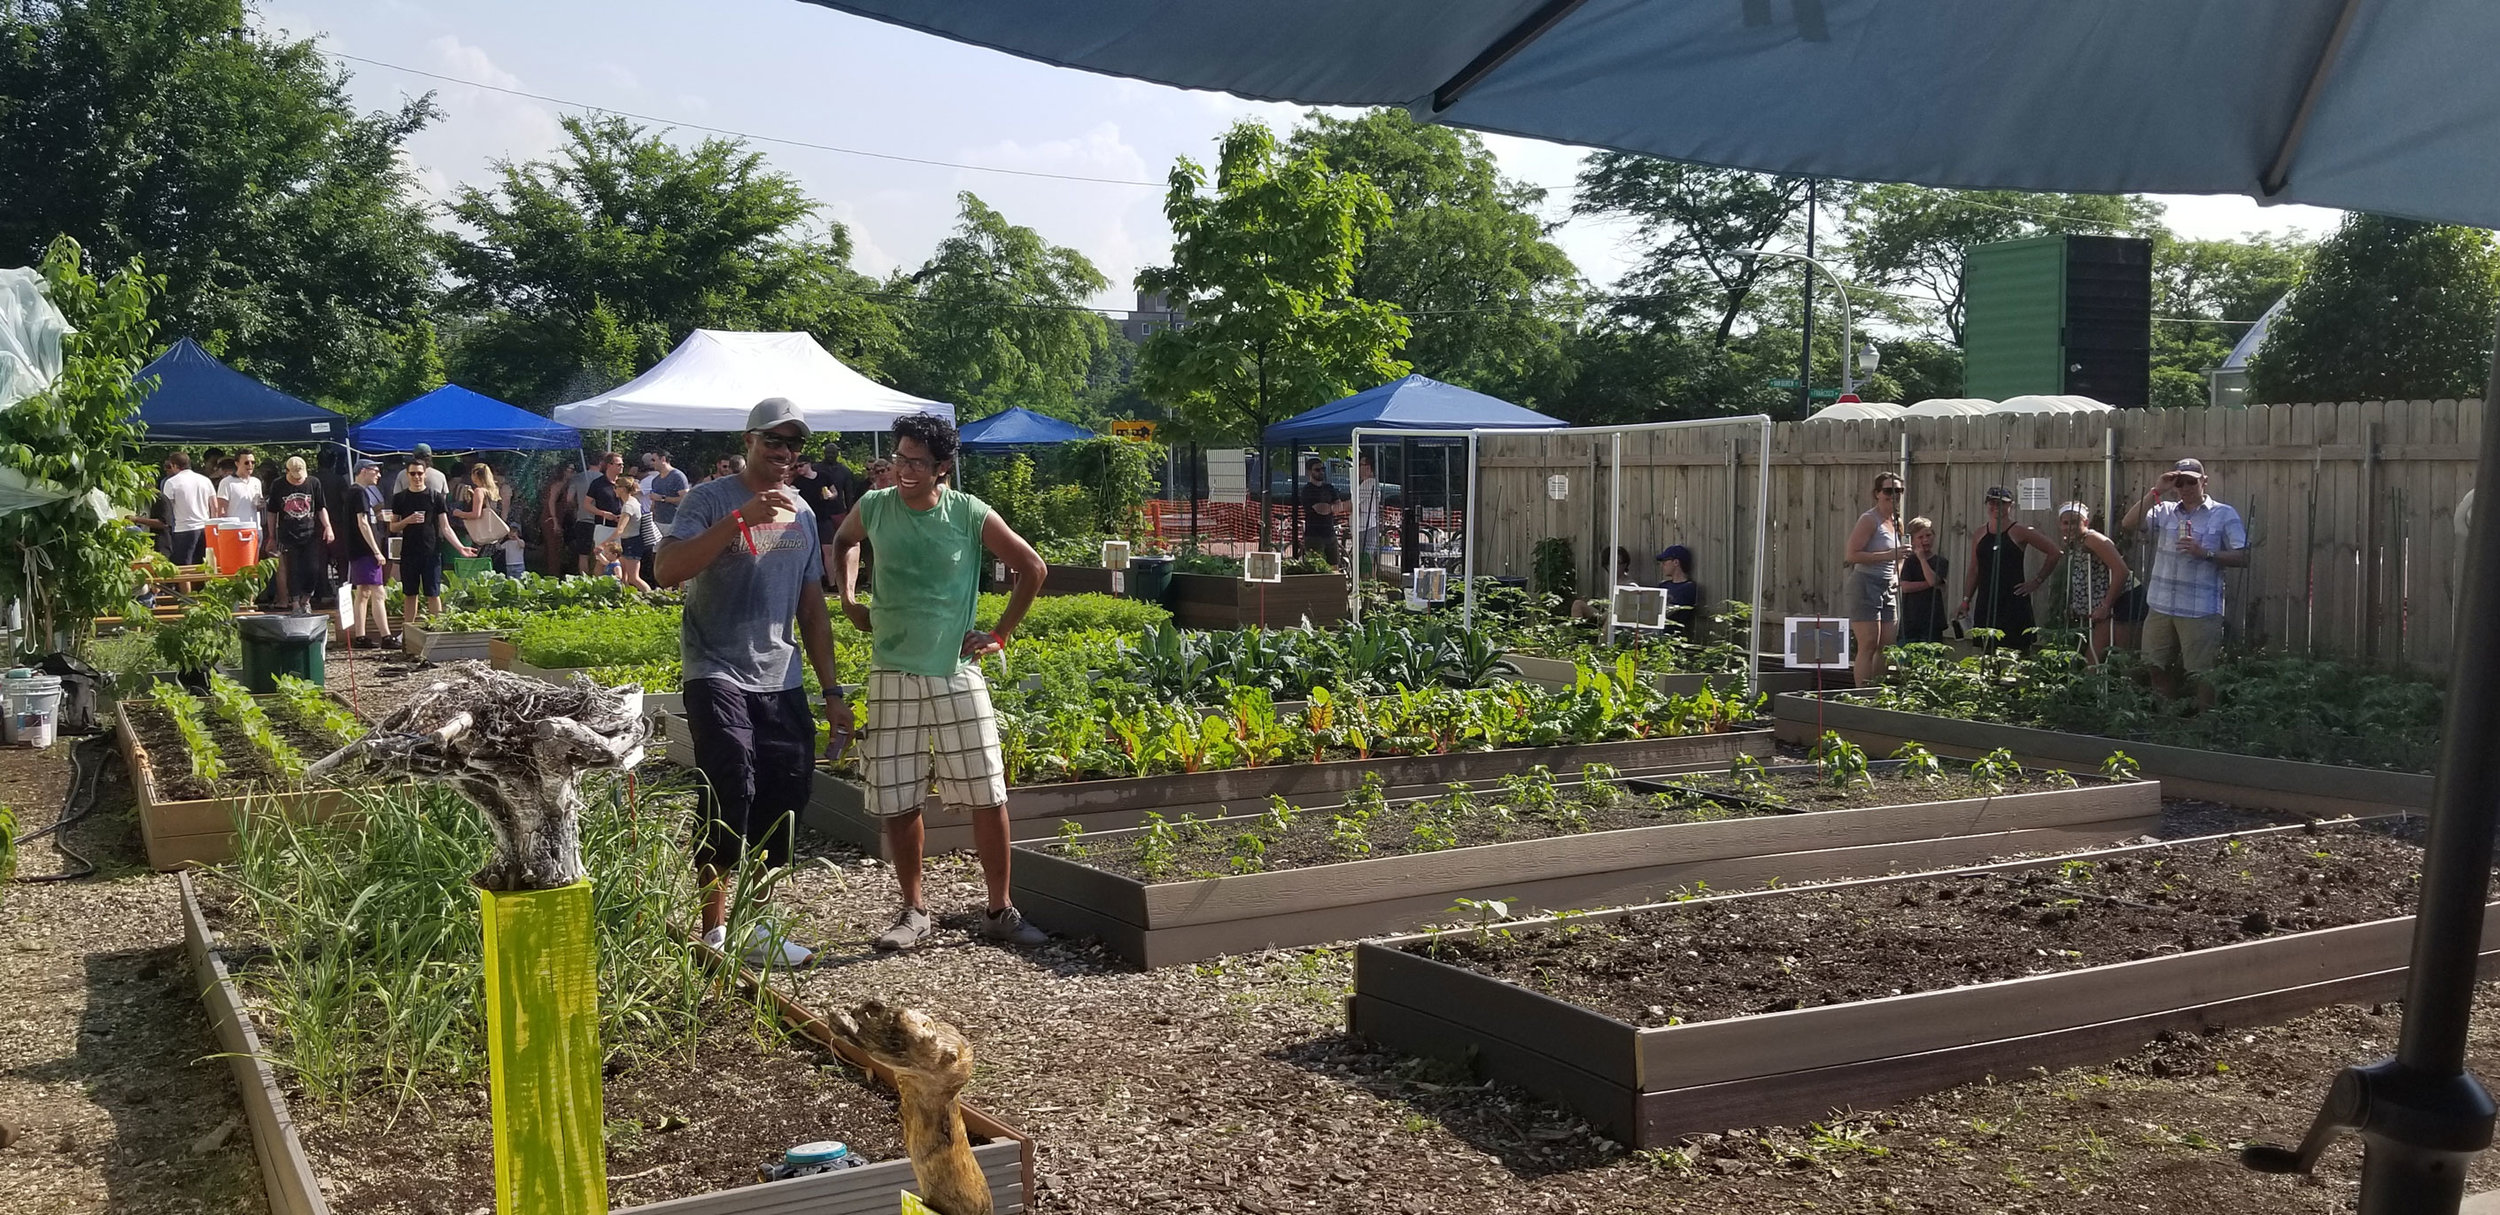 Garden shot from Herban Produce's Farm-To-Table event in 2018.